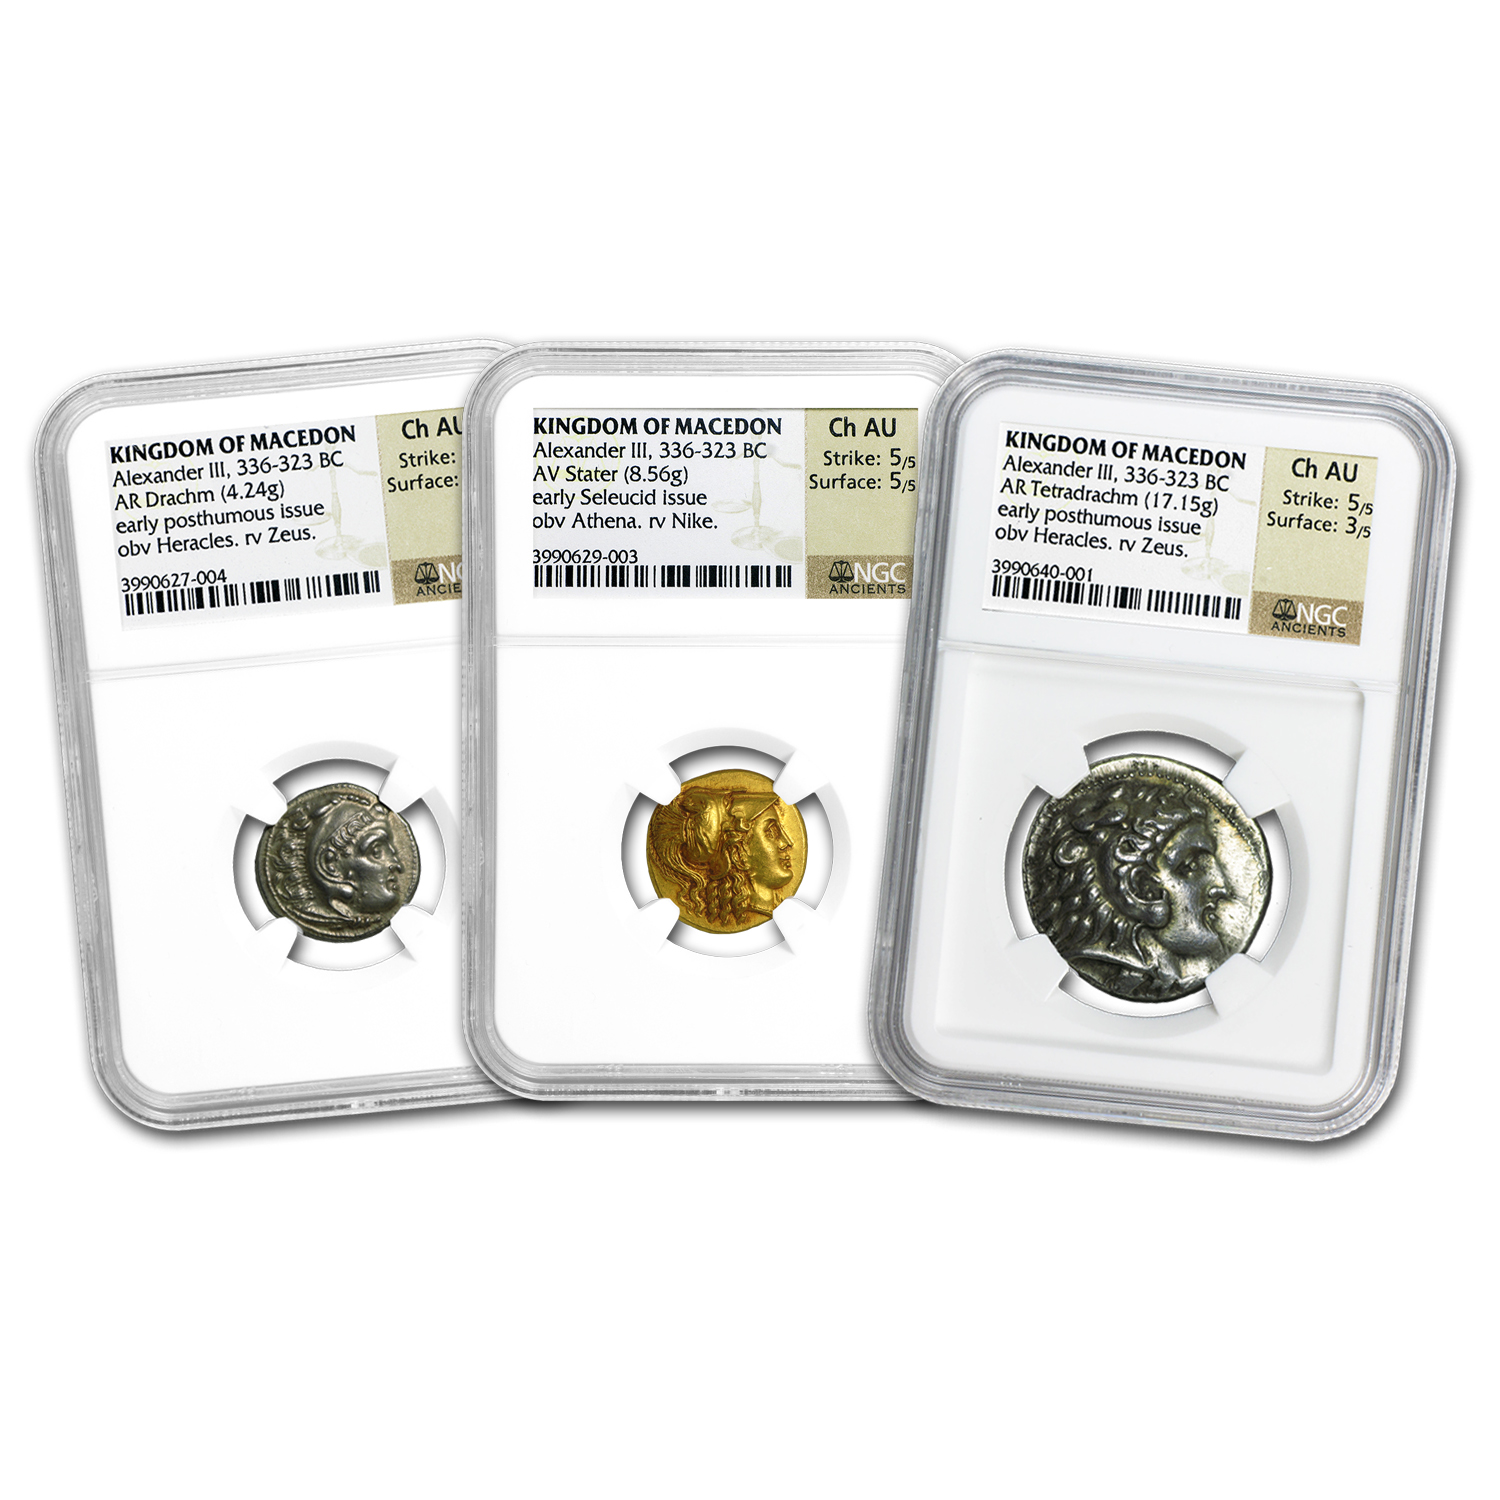 3 Coin Gold & Silver Macedon Alexander III (336-323 BC) CH AU NGC